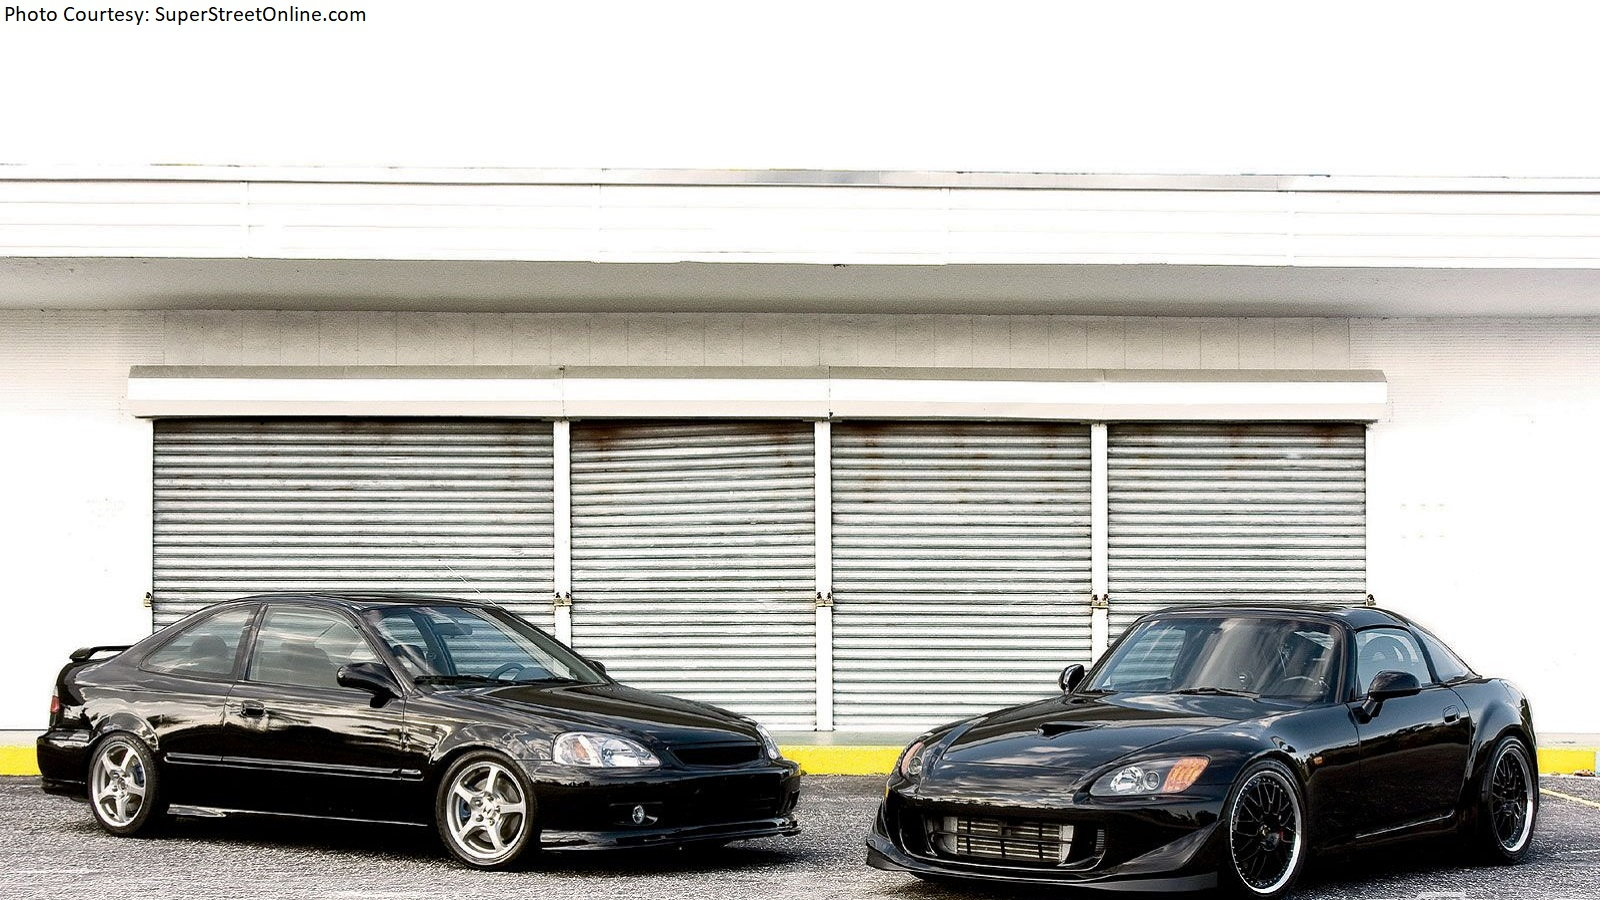 S2000, Civic, Super Street